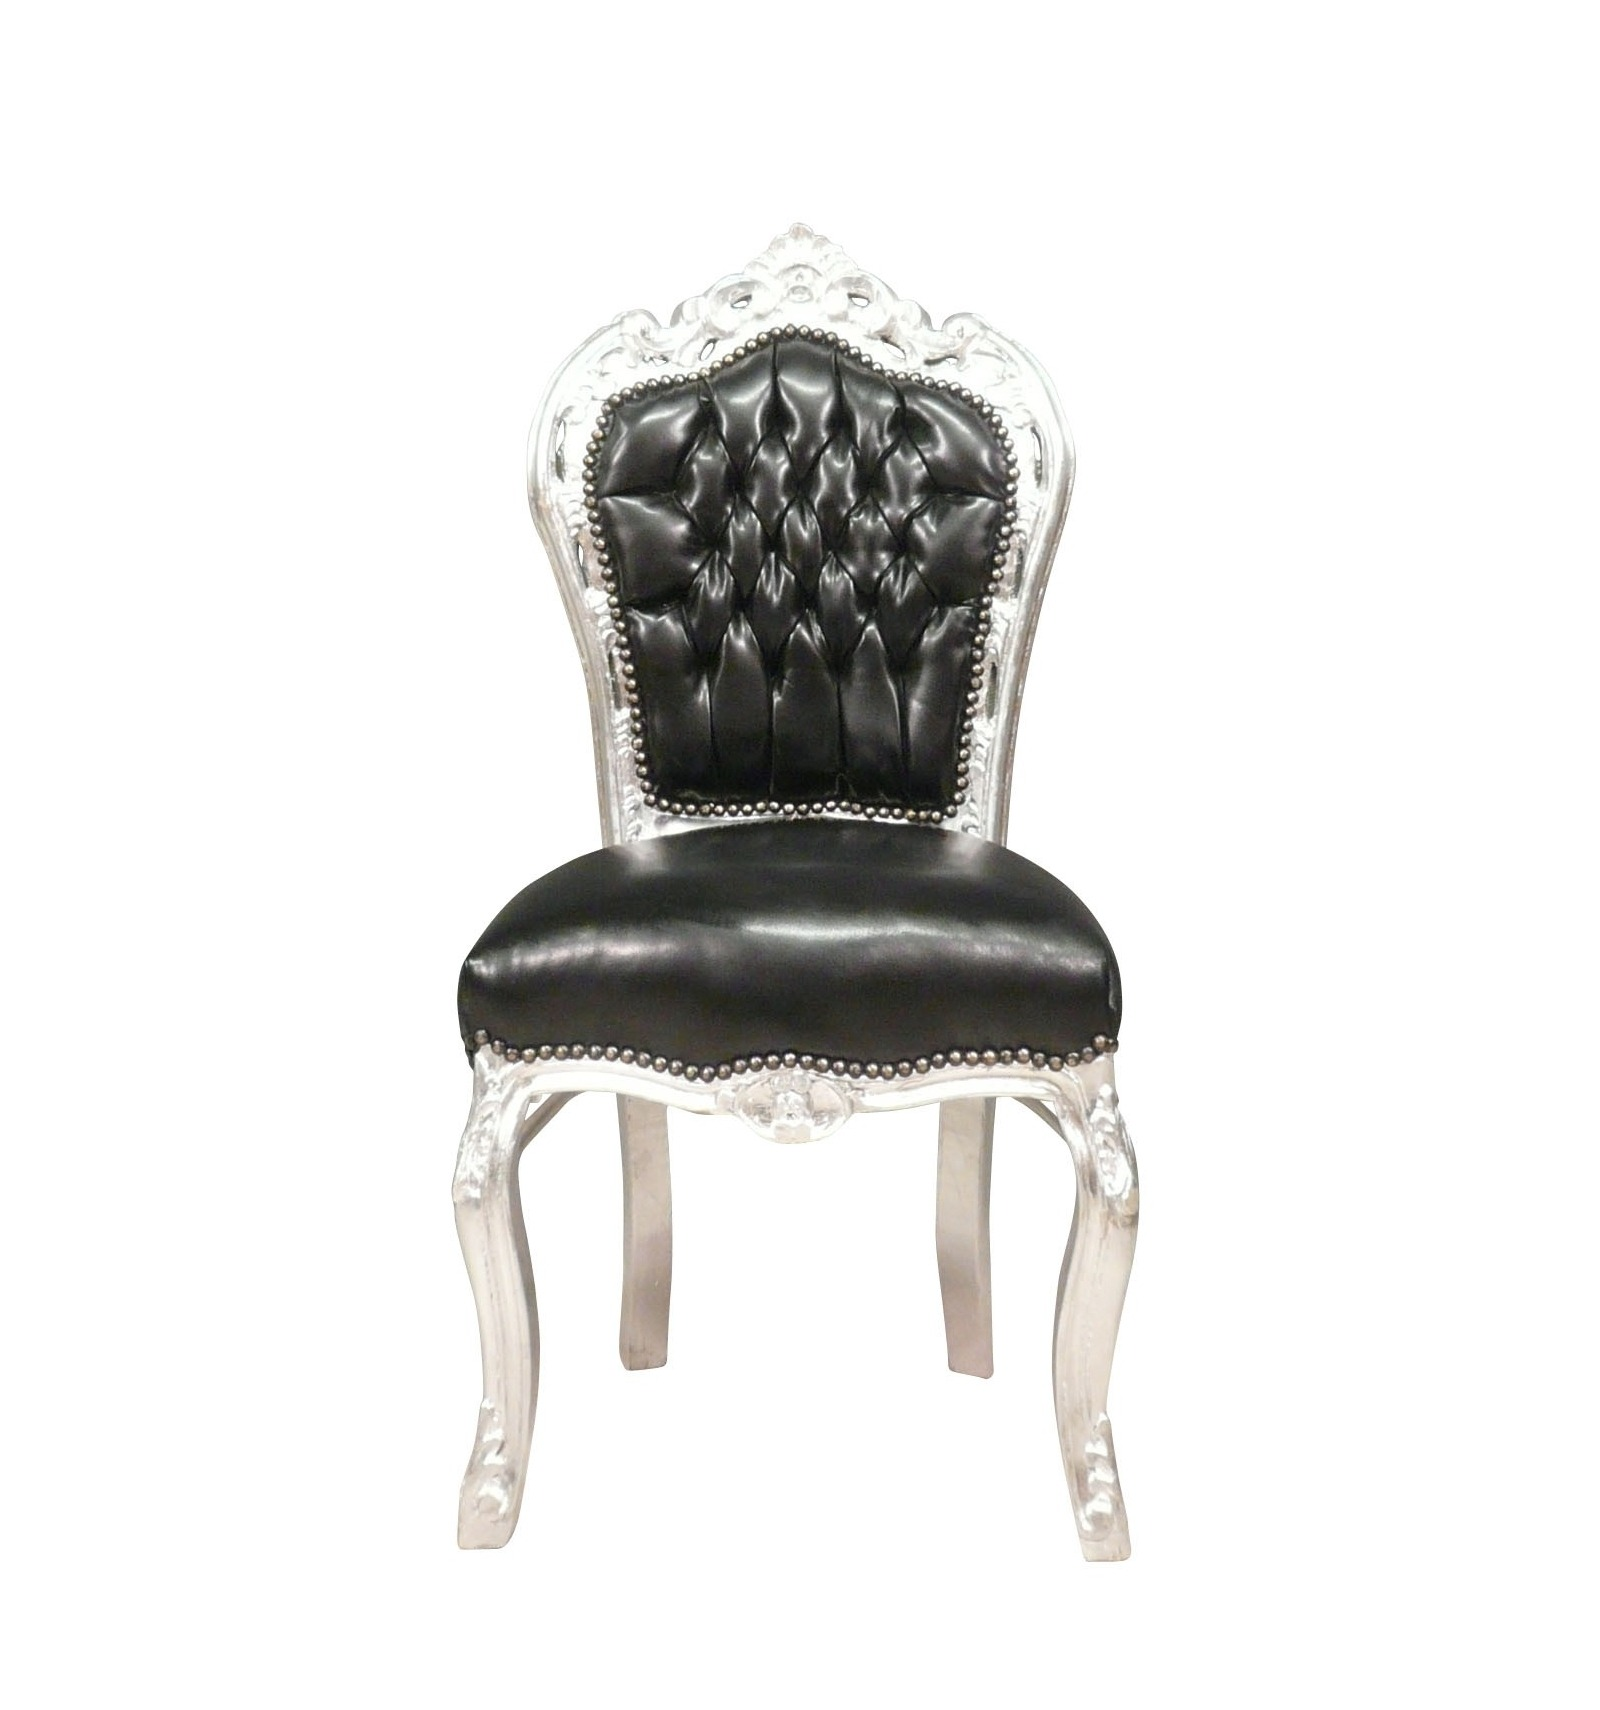 chair baroque black and silver faux leather